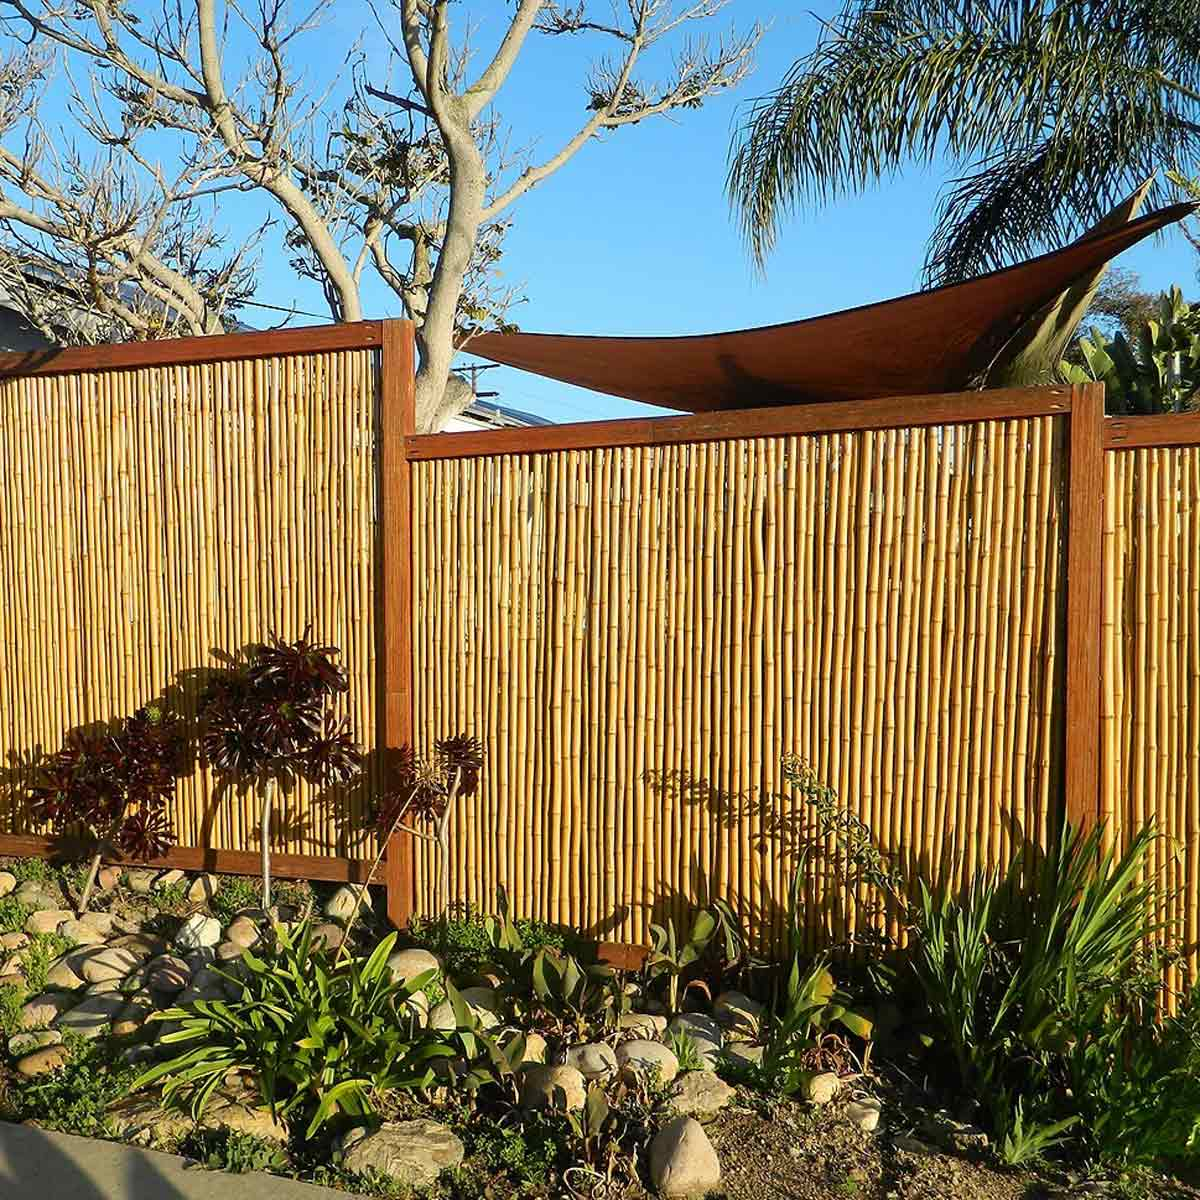 Backyard X Scapes Rolled Bamboo Fencing backyard x-scapes bamboo fencing, natural - walmart